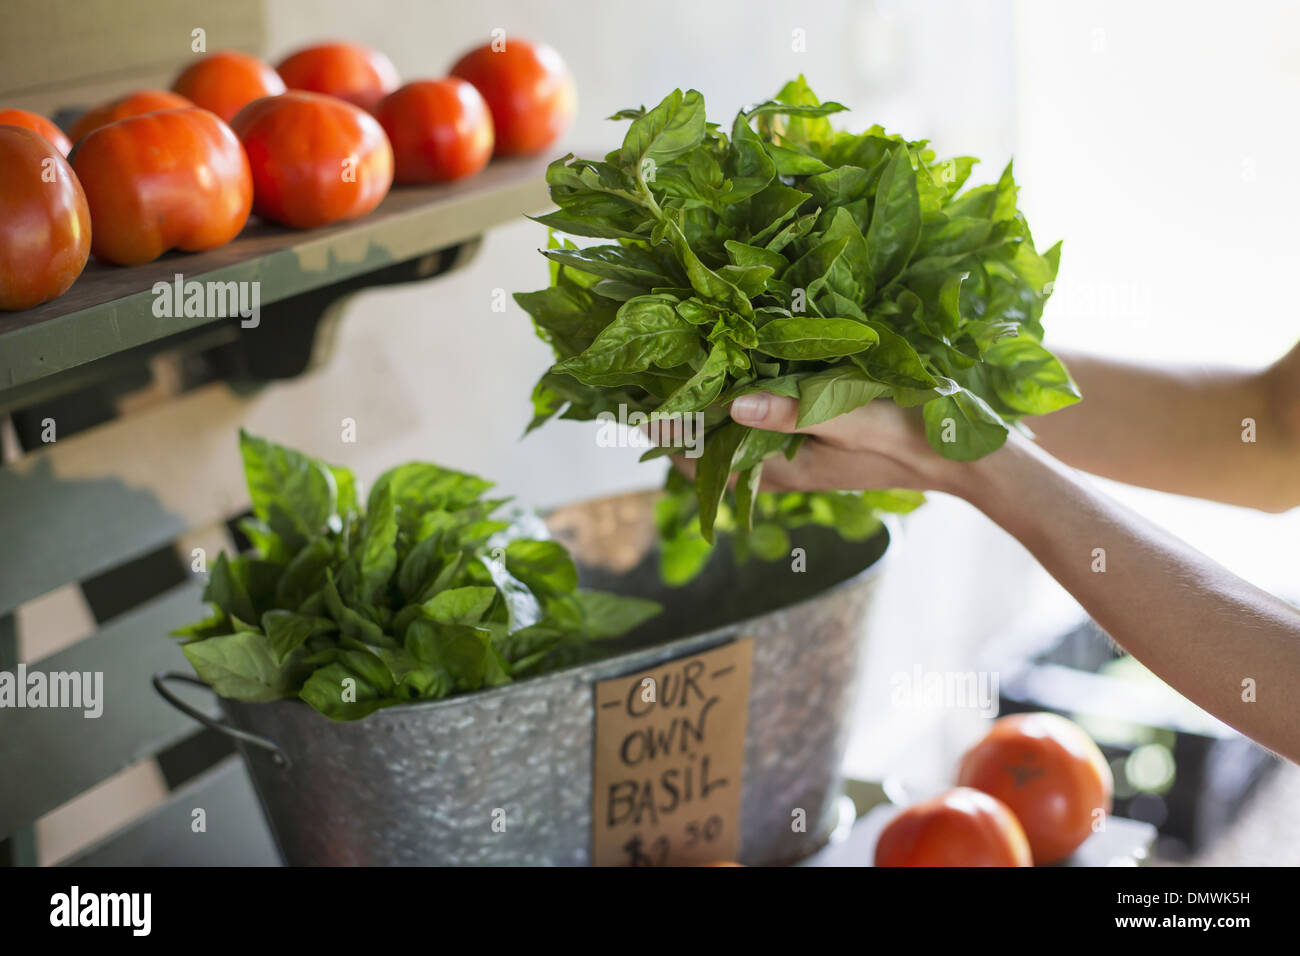 An organic fruit and vegetable farm. A person holding fresh greens salad leaves. - Stock Image